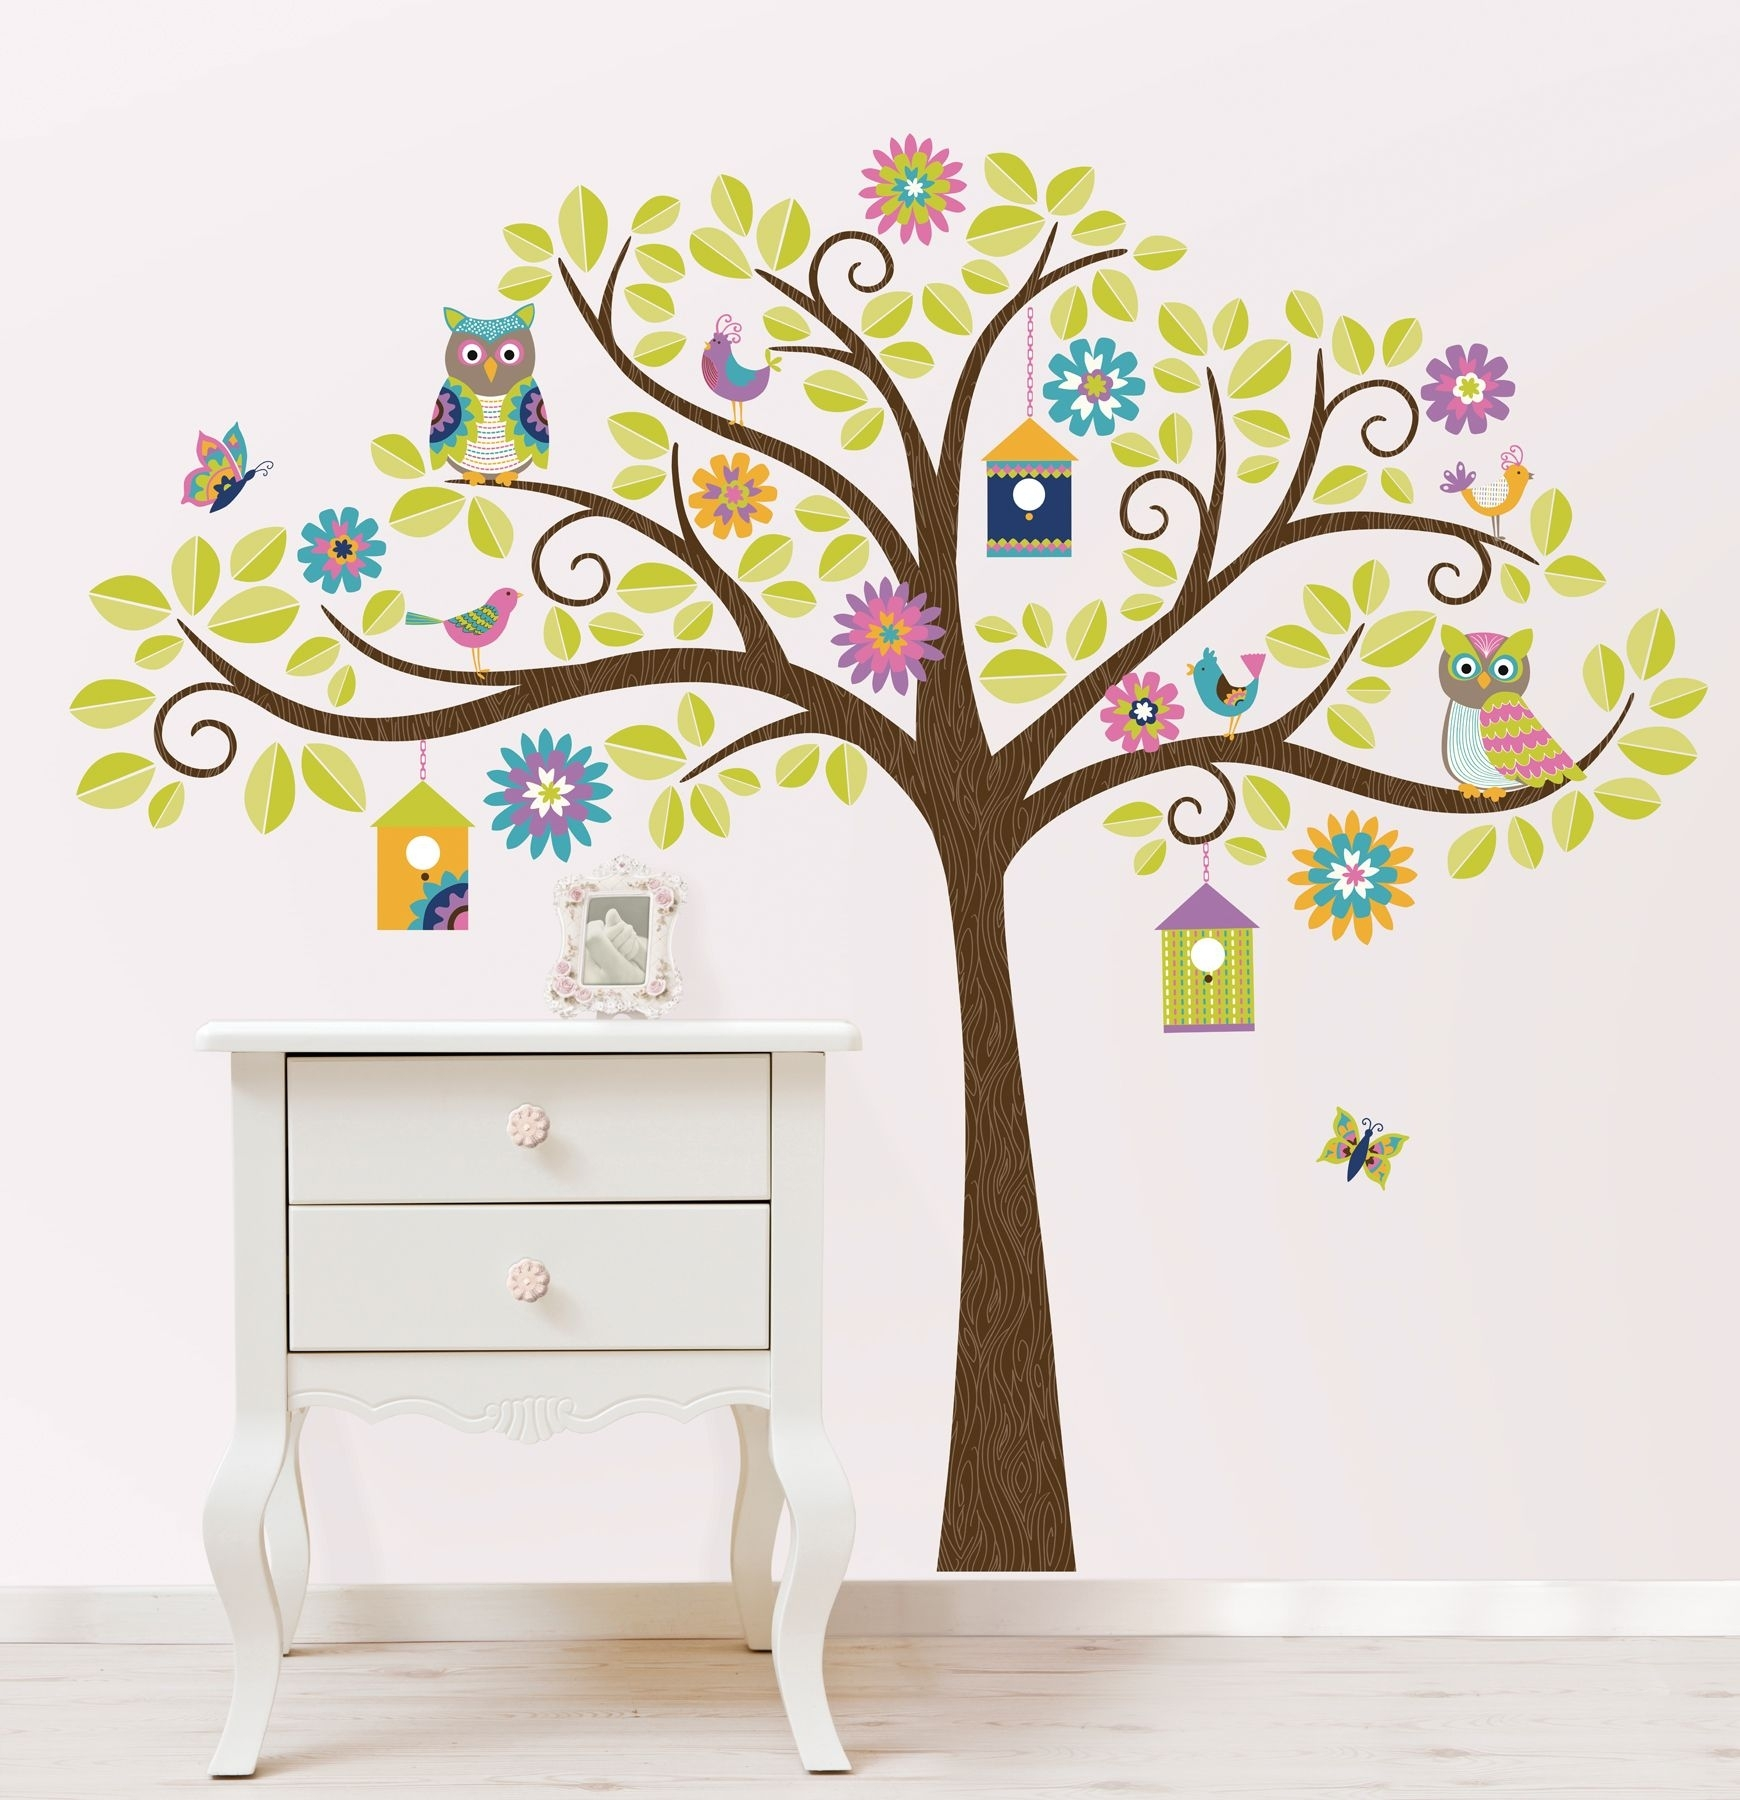 Hoot And Hang Out Tree Wall Art Sticker Kit Inside 2017 Tree Wall Art (View 11 of 15)